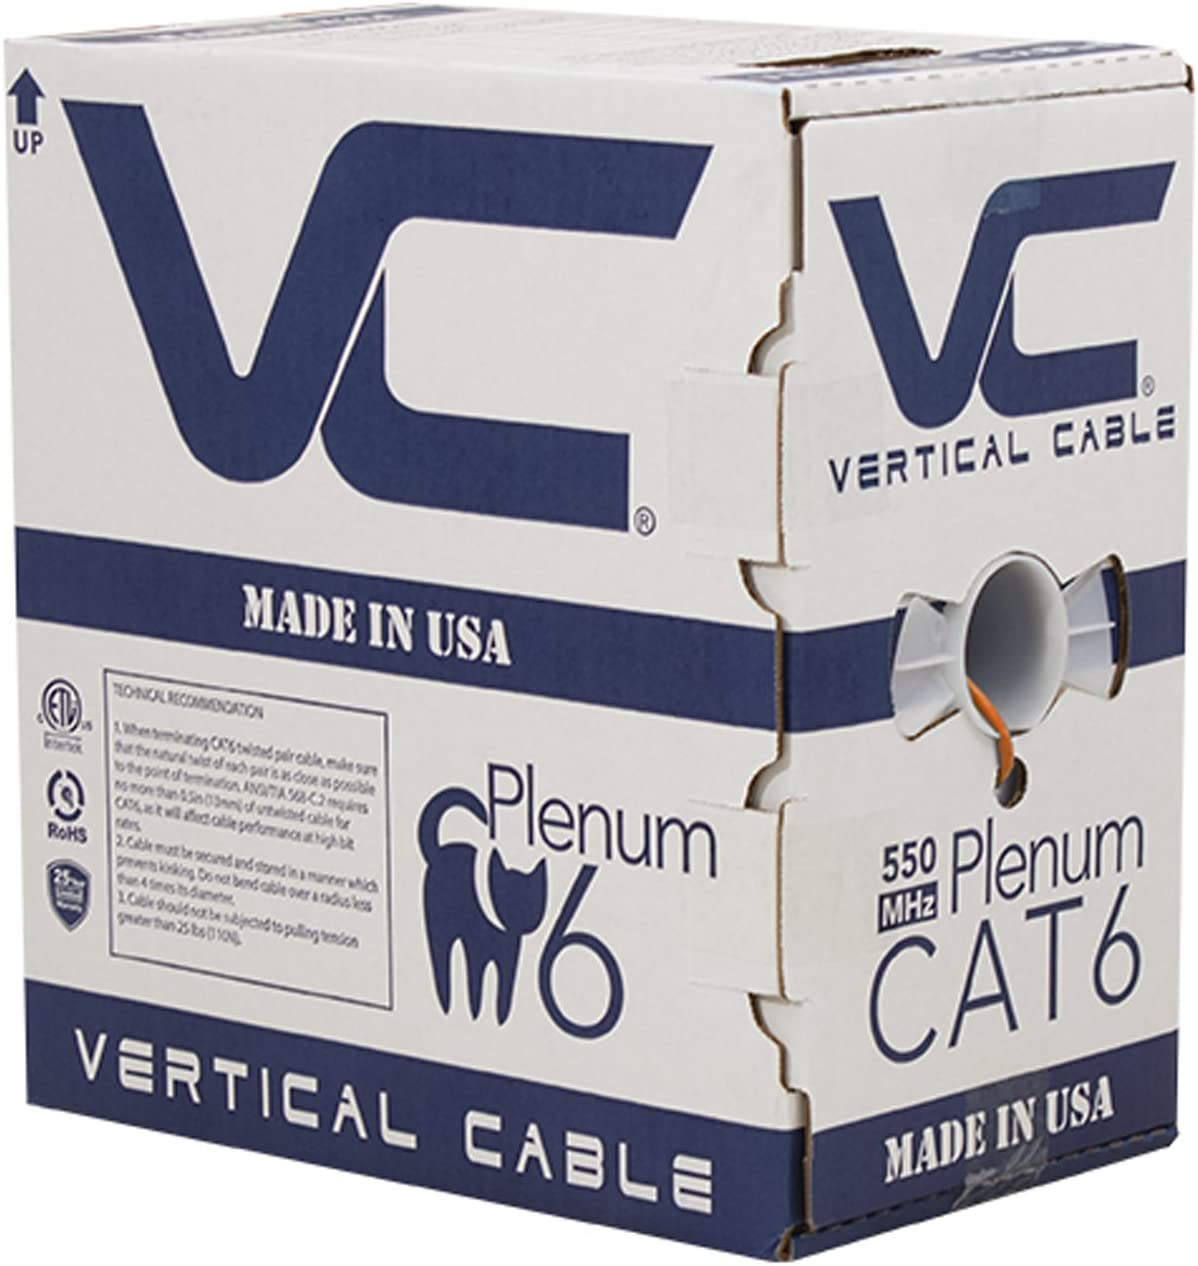 Orange 8C Solid Bare Copper UTP Made in USA Bulk Ethernet Cable 1000ft 550 MHz Vertical Cable CAT6 23AWG Plenum